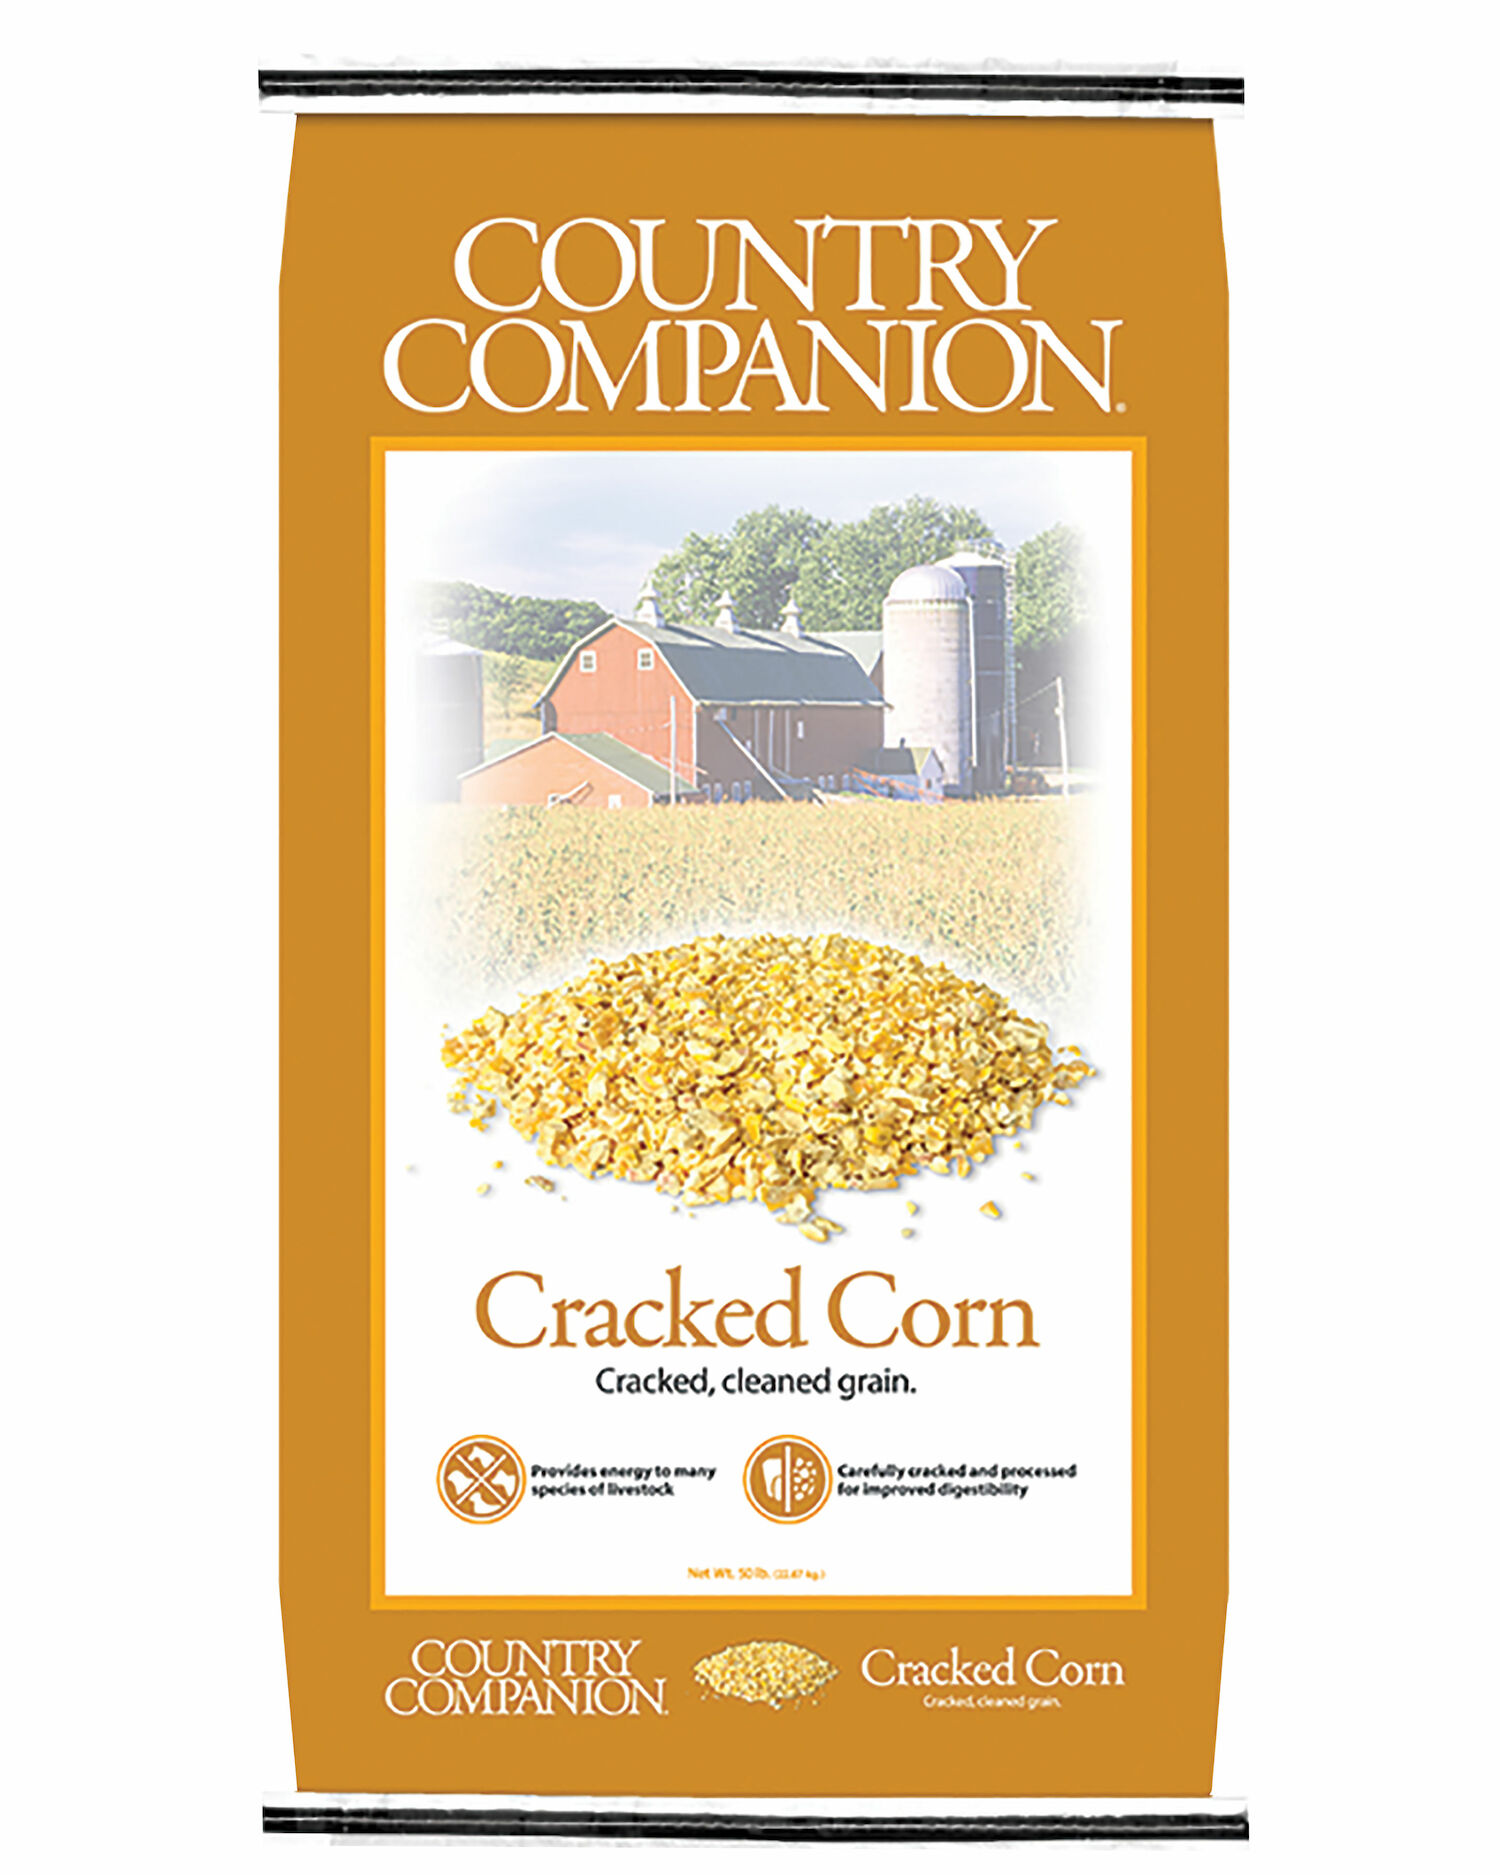 722304404277_Country_Companion_Cracked_Corn.jpg